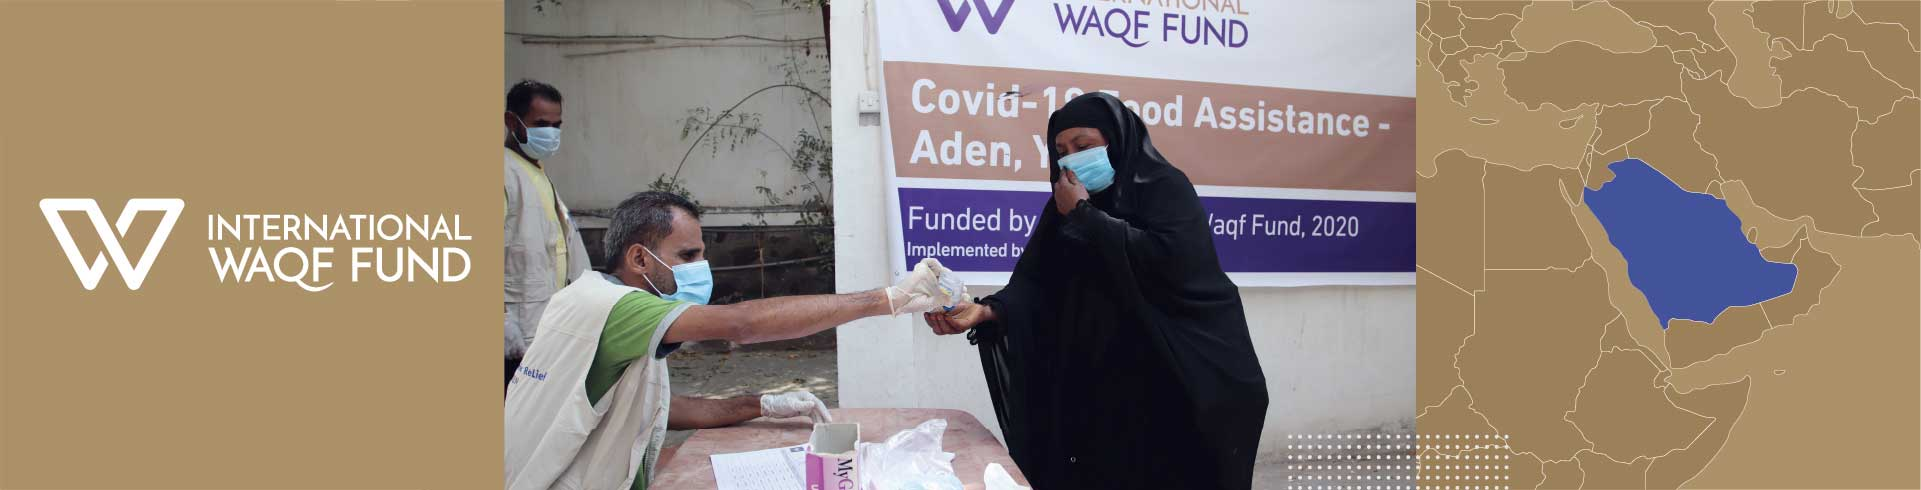 Providing families with life-saving food assistance during the Covid-19 pandemic